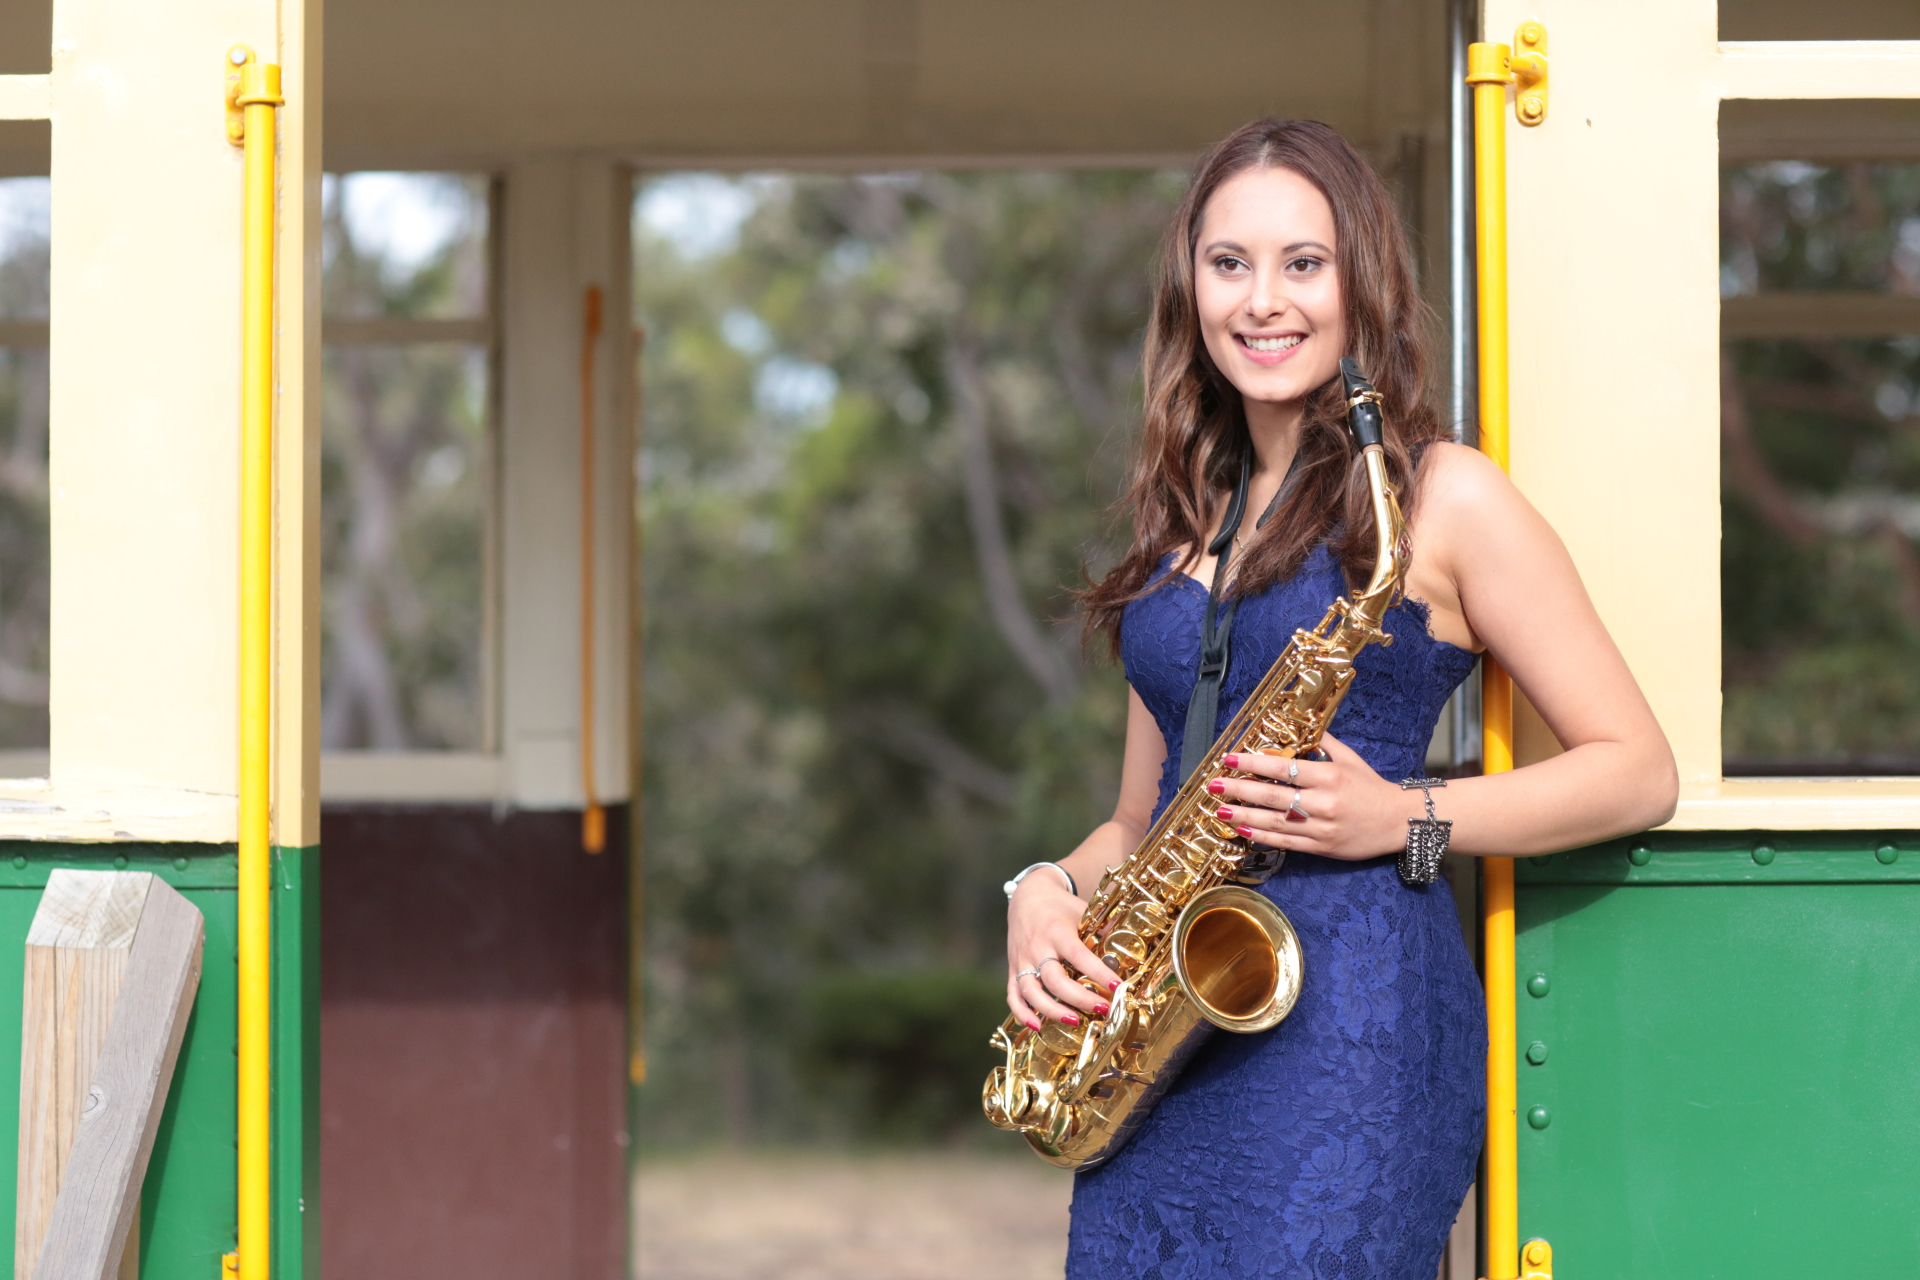 saxophone, teaching, music, musician, woodwind, clarinet, flute, kathryn cooper, melbourne, educator, performer, DJ, jazz, classical, pop, school, Kath, kathcoops